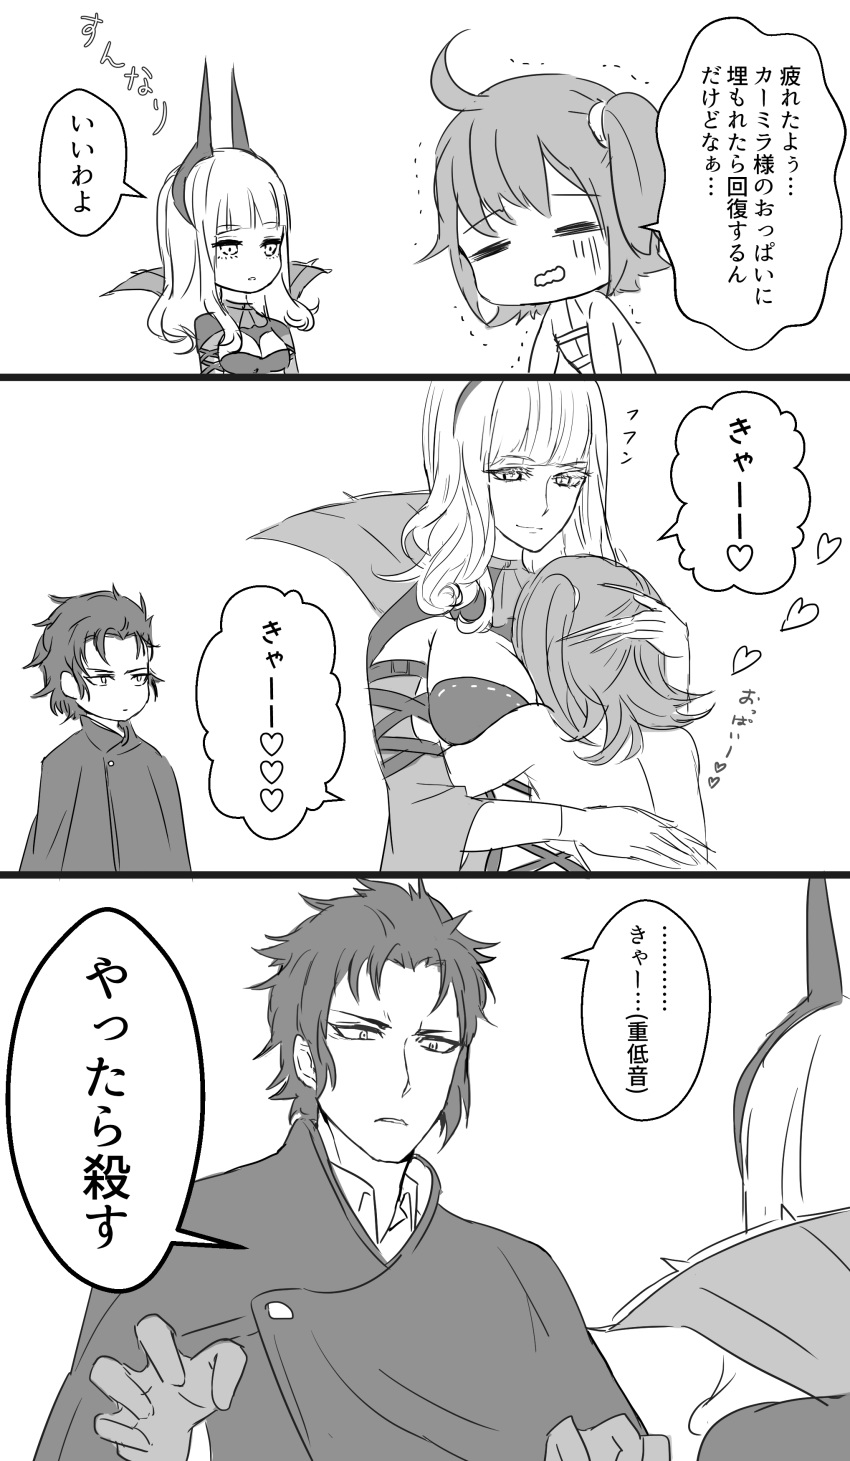 2girls 3koma =_= absurdres ahoge bangs between_breasts blunt_bangs breasts carmilla_(fate/grand_order) chaldea_uniform chibi cloak closed_mouth coat comic eyebrows_visible_through_hair fate/grand_order fate_(series) fingernails fujimaru_ritsuka_(female) gloves greyscale hair_tie hand_up head_between_breasts heart high_collar highres hijikata_toshizou_(fate/grand_order) horns hug large_breasts long_fingernails long_hair looking_at_another looking_down monochrome multiple_girls sharp_fingernails shiina_(vuurrood) side_ponytail simple_background smile speech_bubble spoken_heart standing talking translation_request trembling upper_body wavy_mouth white_background yuri